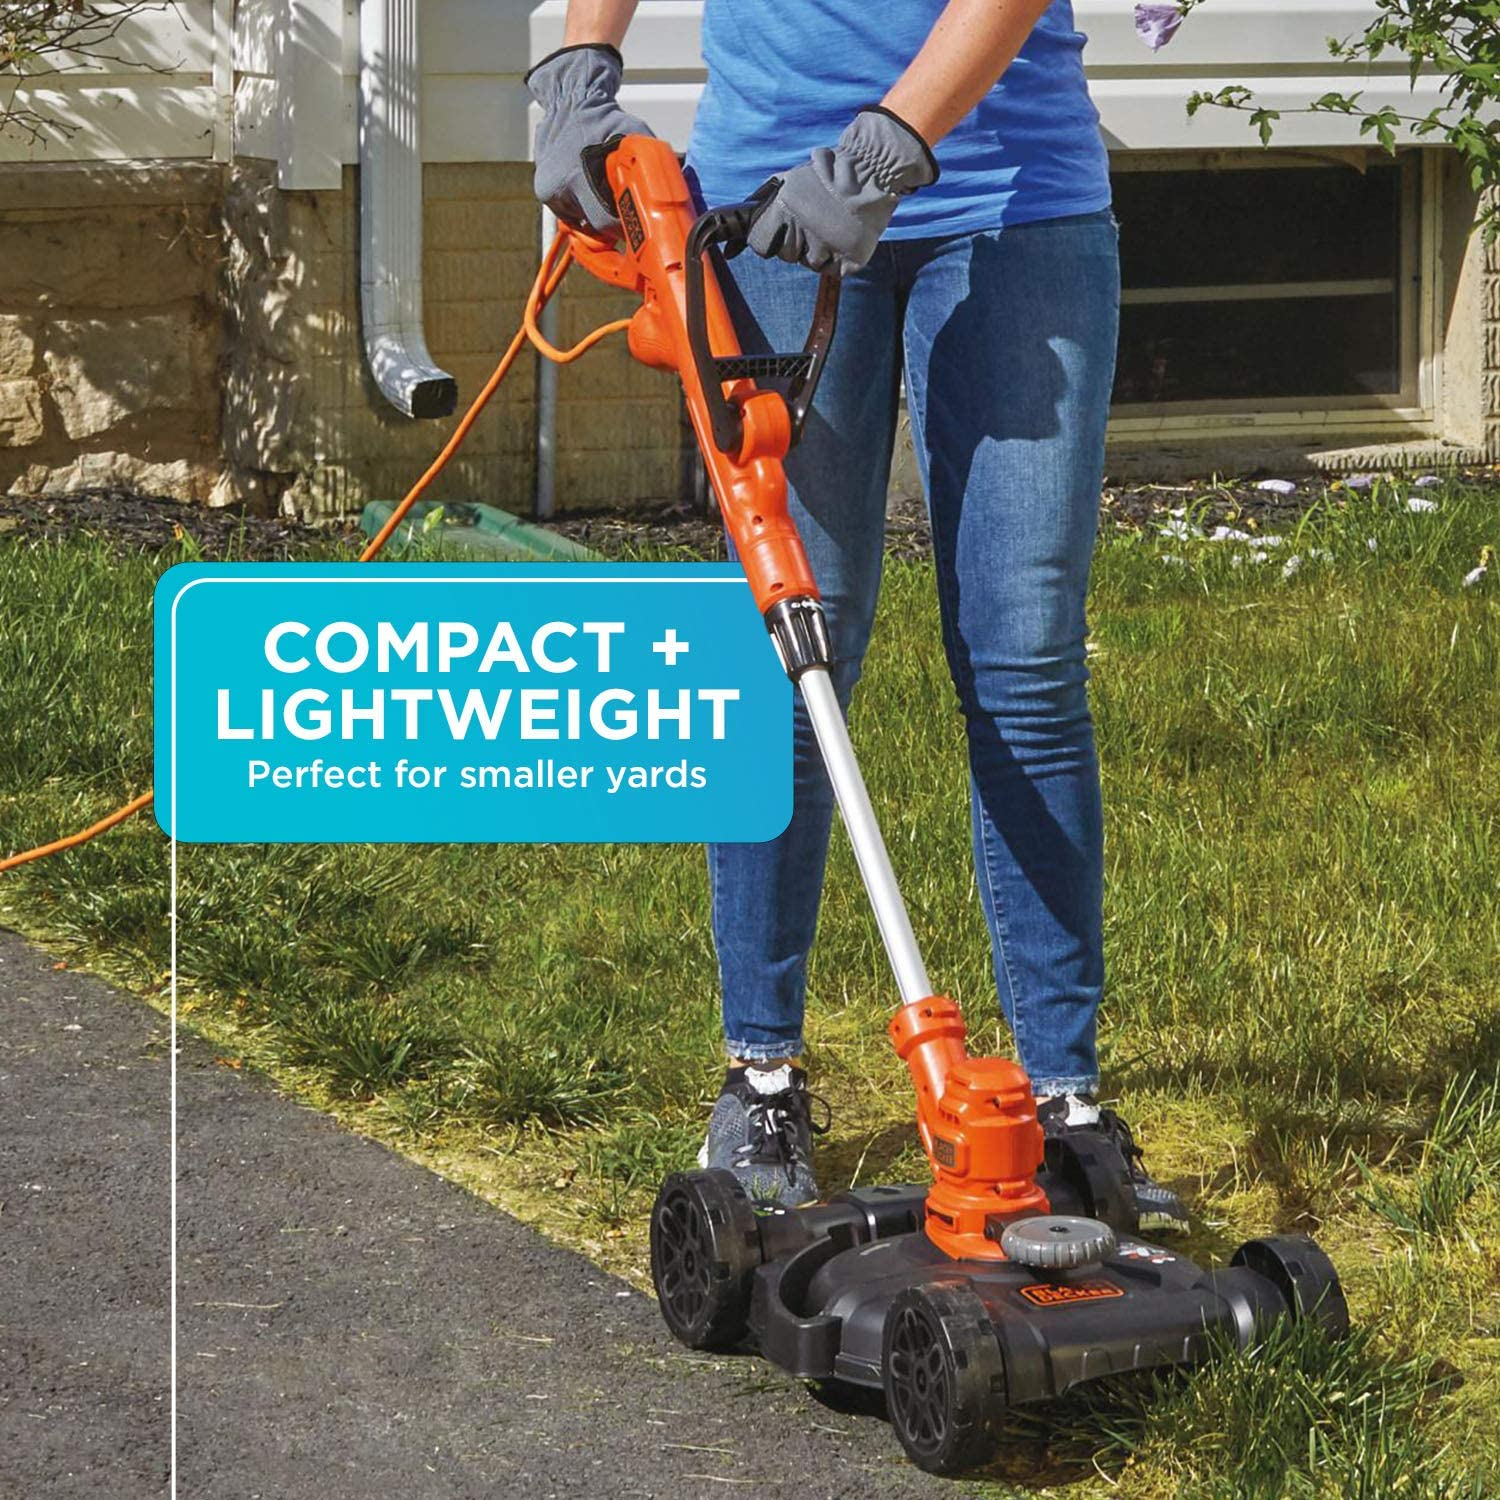 BLACK+DECKER 3-in-1 Cordless Lawn Mower